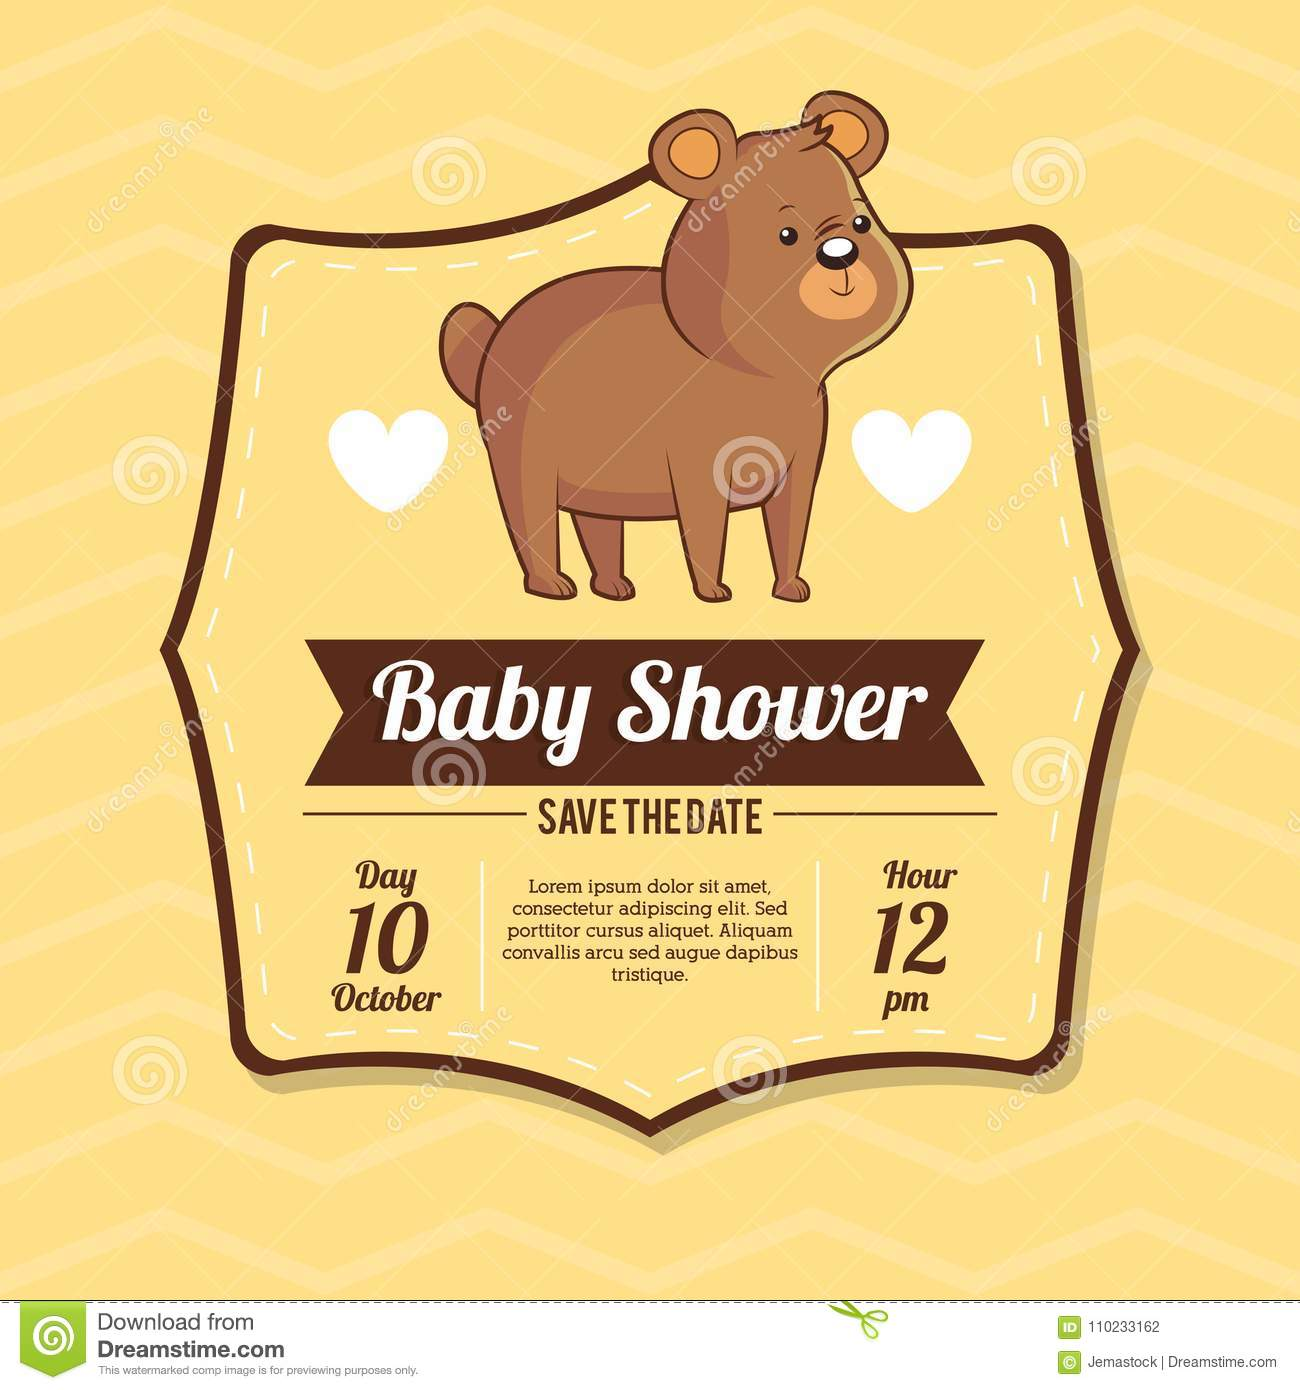 Baby Shower Card Invitation Save The Date With Bear Cute Stock